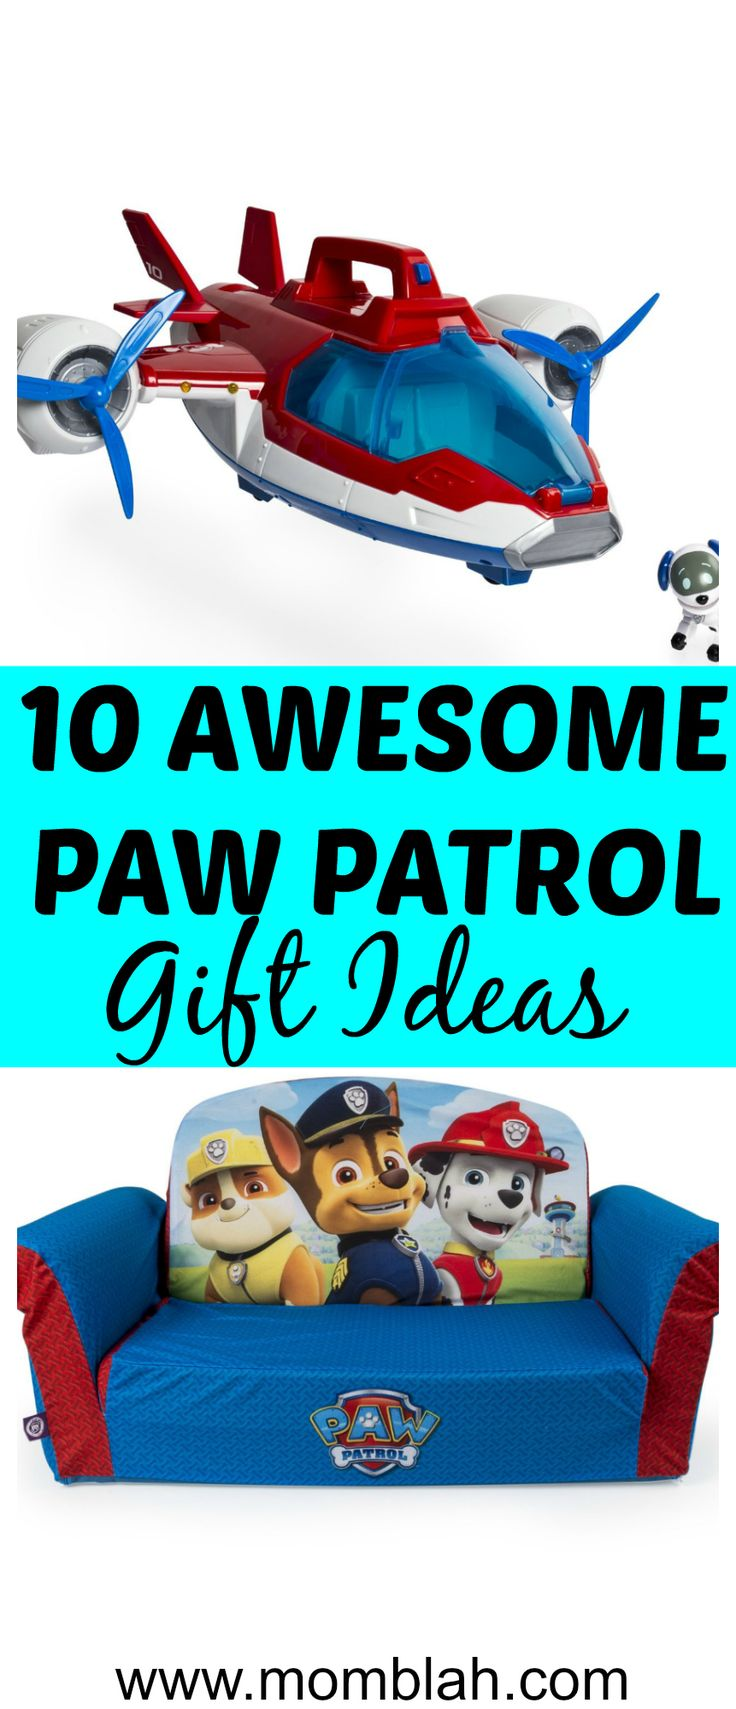 www.momblah.com  Awesome Paw Patrol Gift Ideas guaranteed to please your toddler or preschooler!  motherhood, momhacks, gift ideas, preschoolers, paw patrol